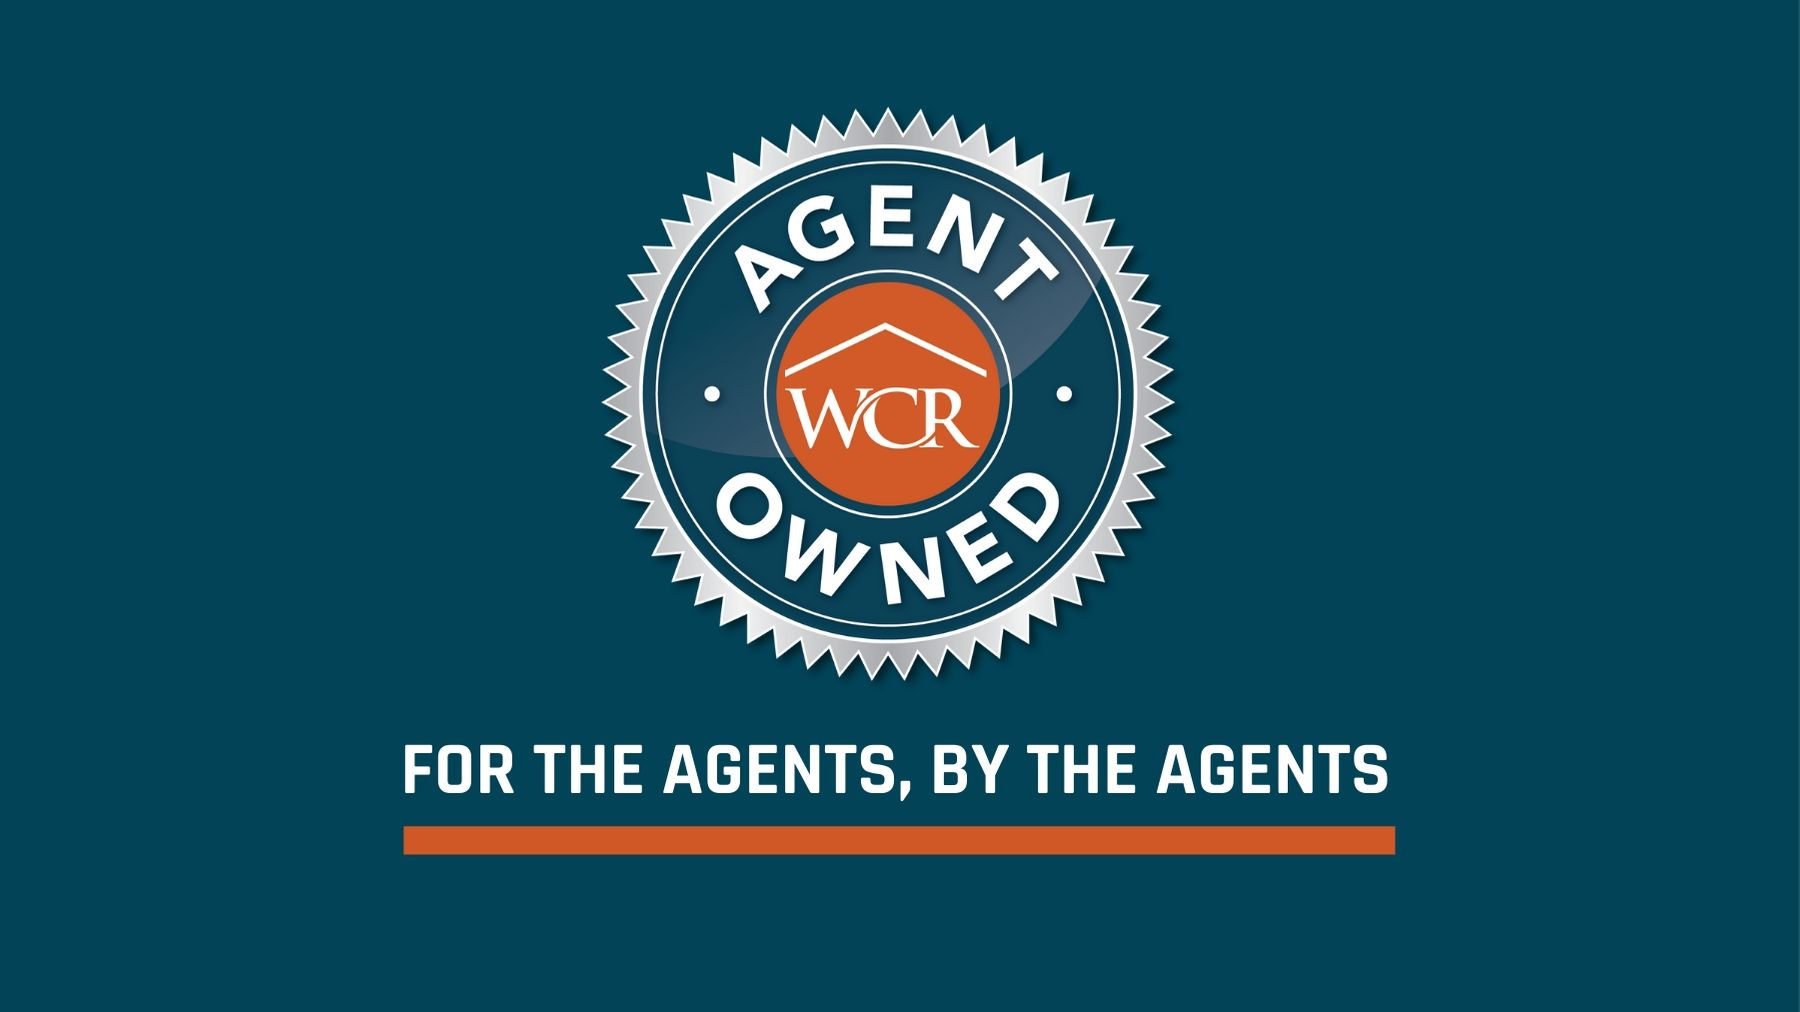 Worth Clark Realty- For the Agents, By the Agents